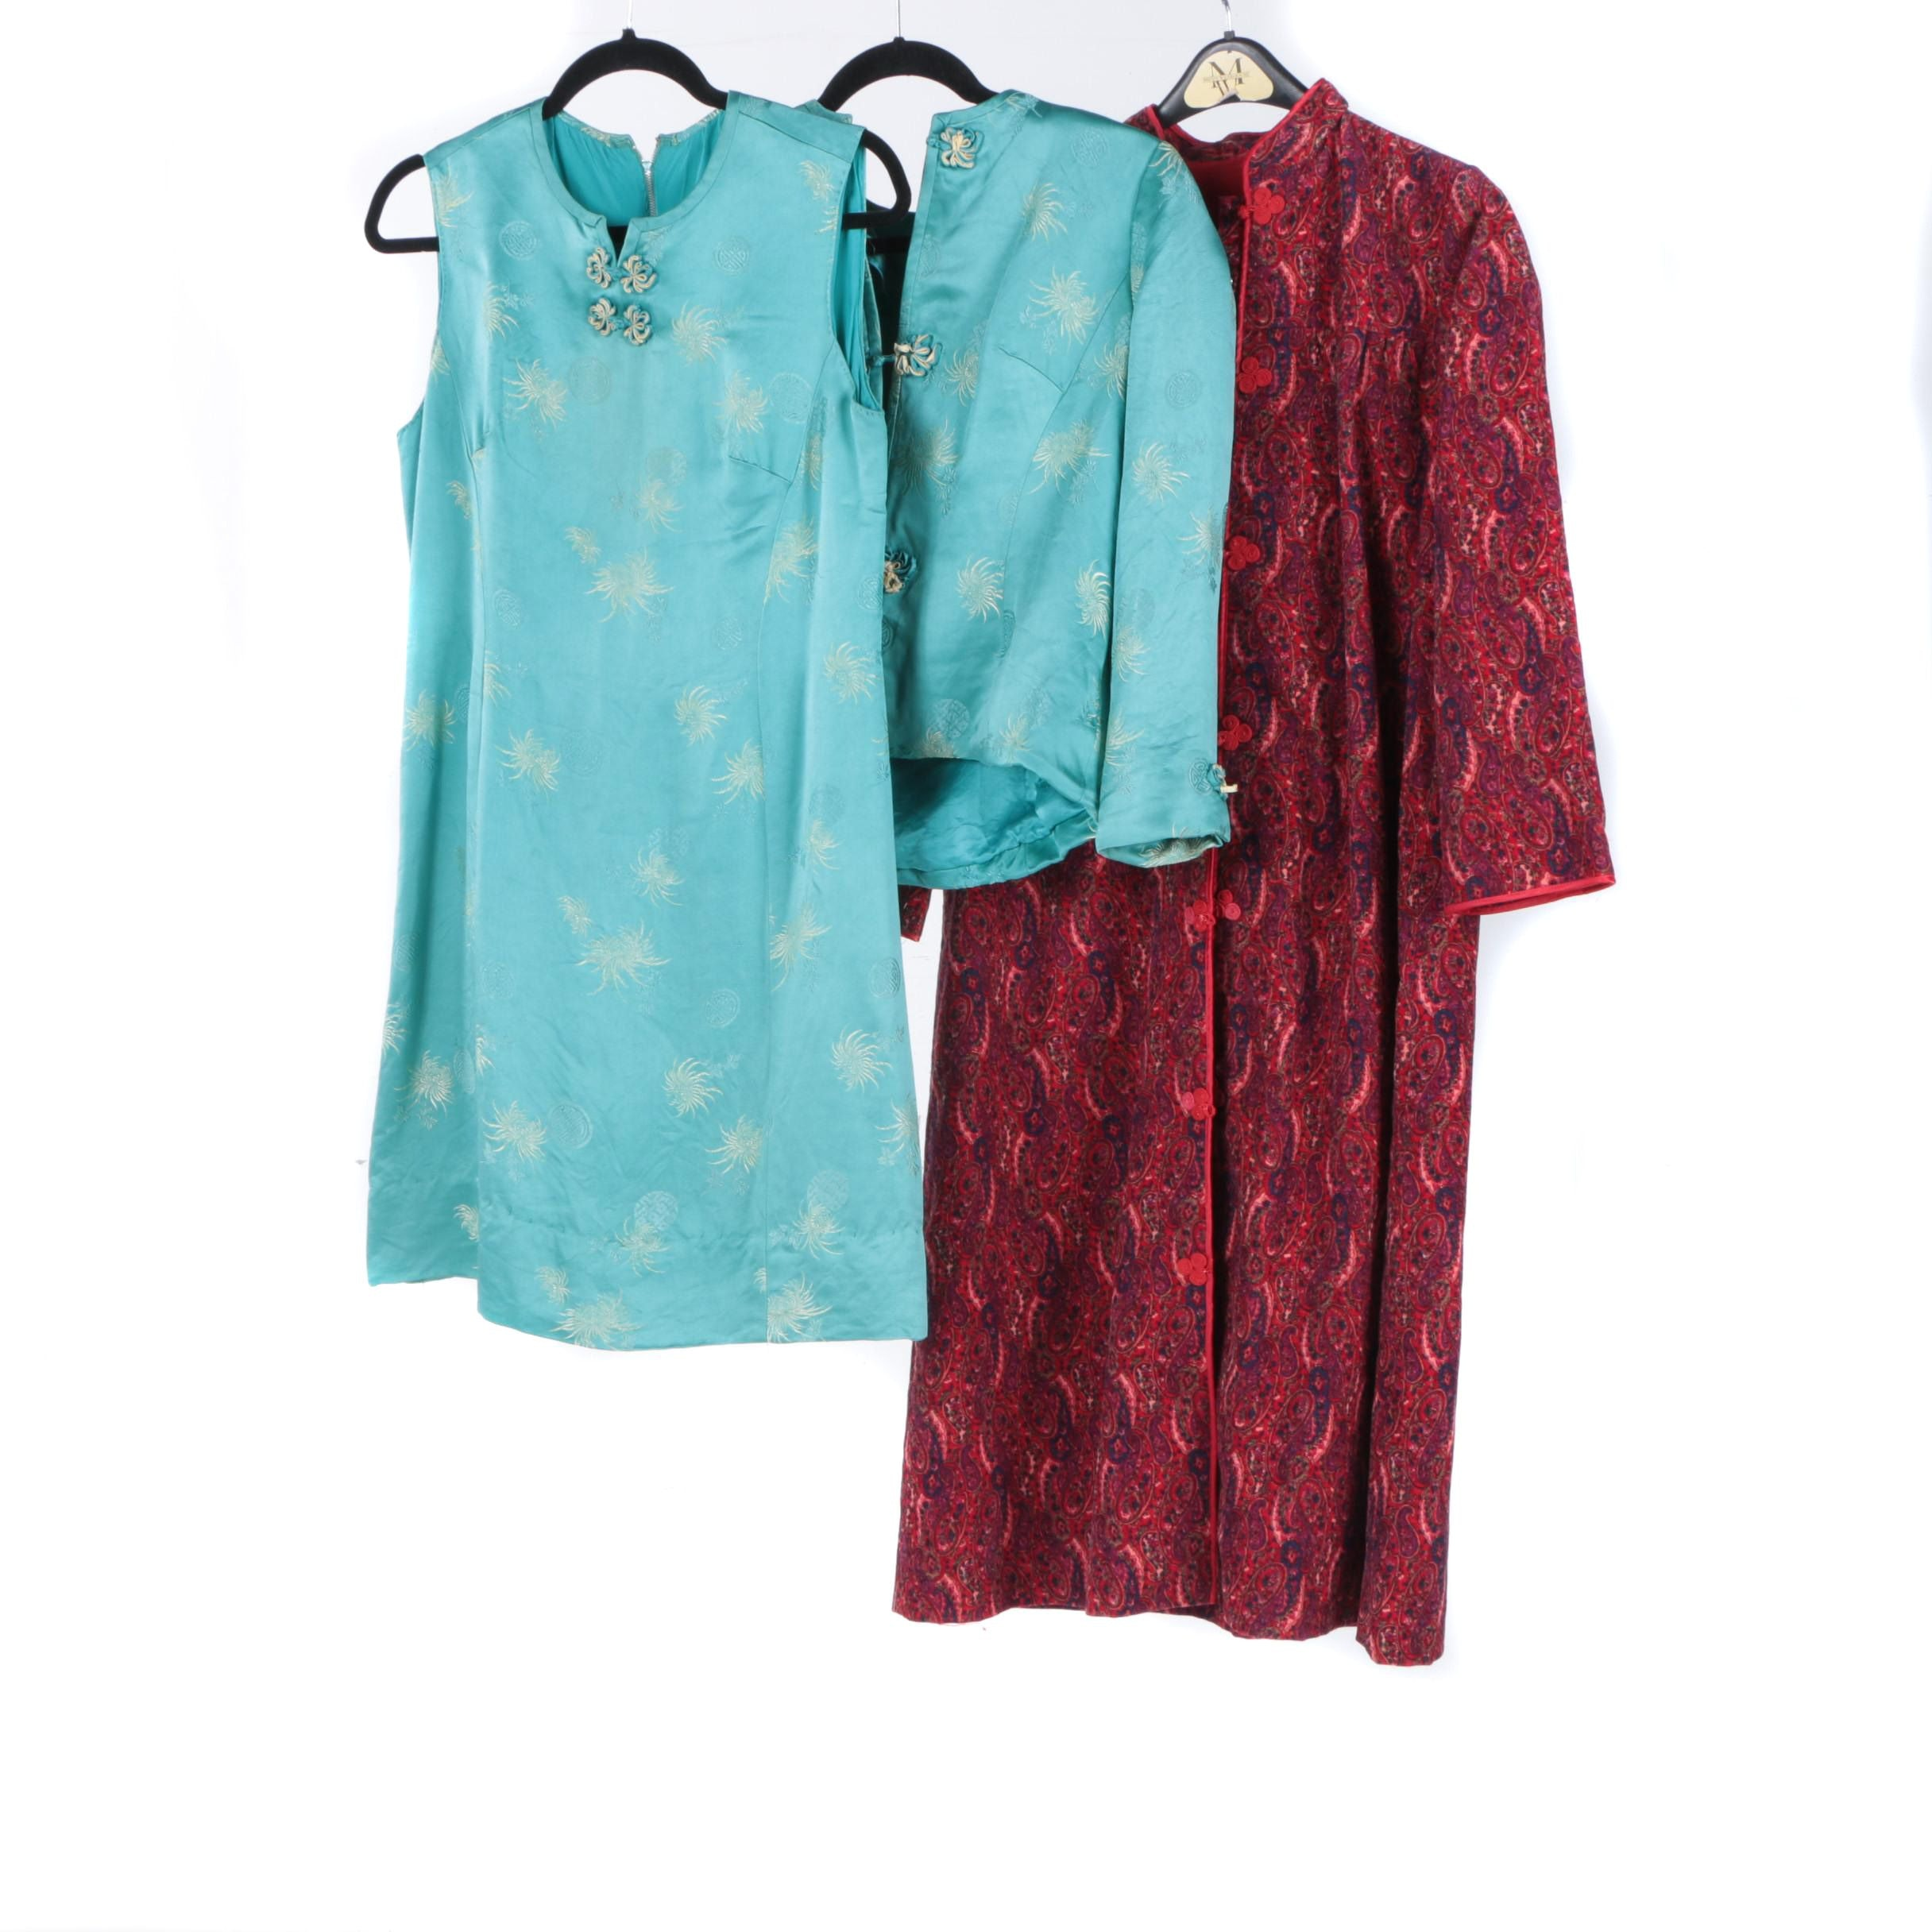 Women's Vintage Asian Inspired Clothing